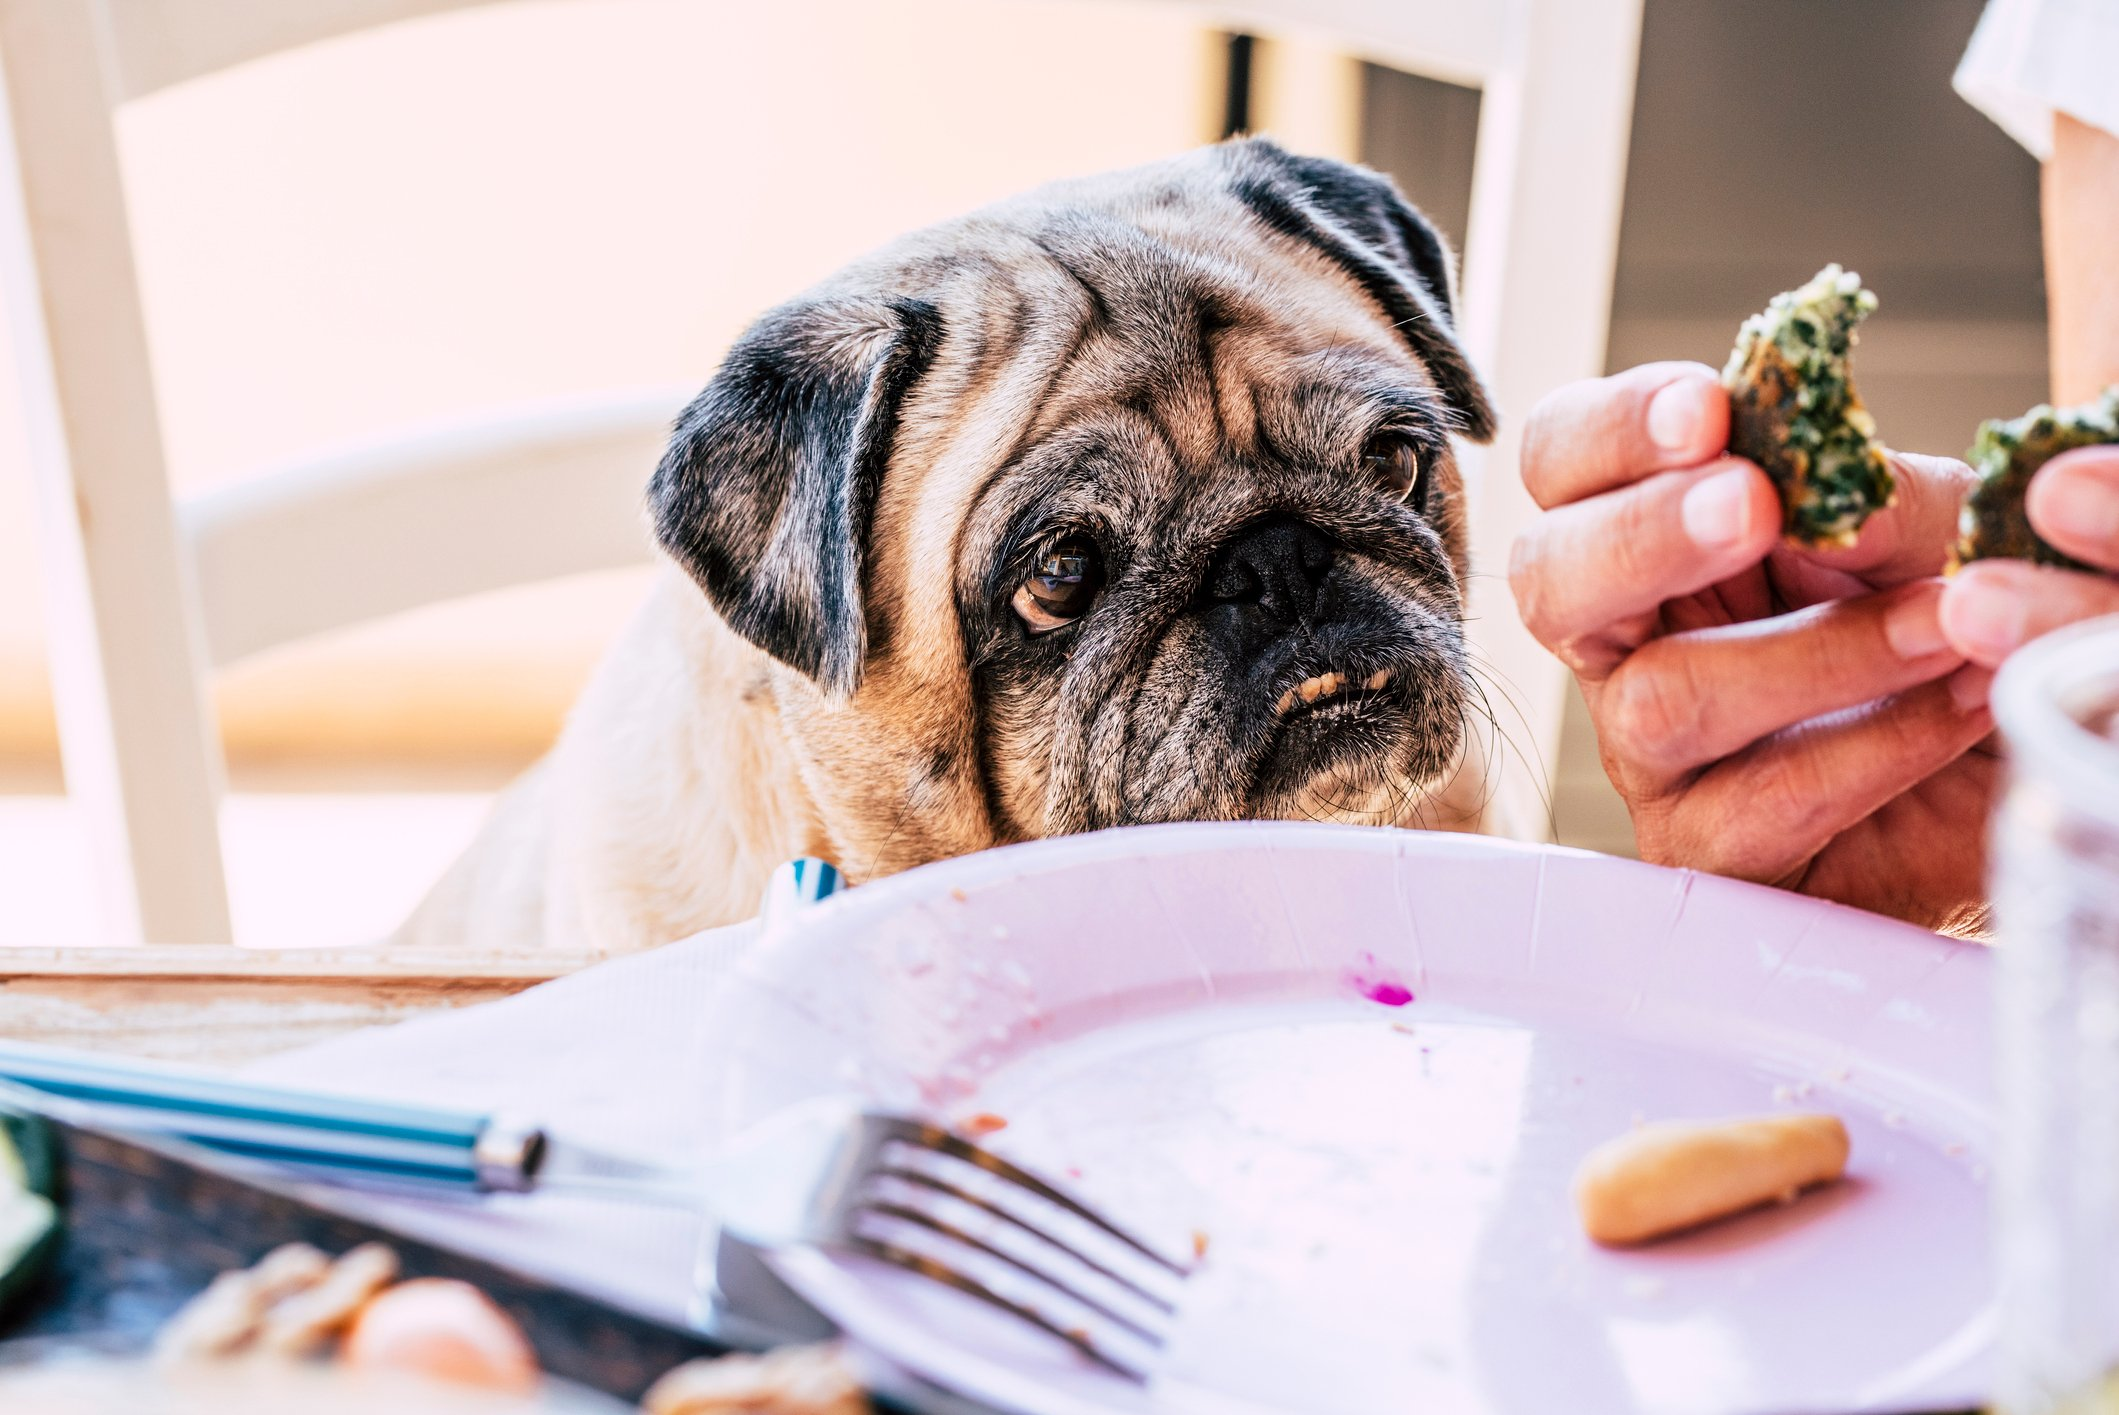 Old and fun pug dog portrait looking at some food while human owner eat it - concept of adorable domestic life animal at the table